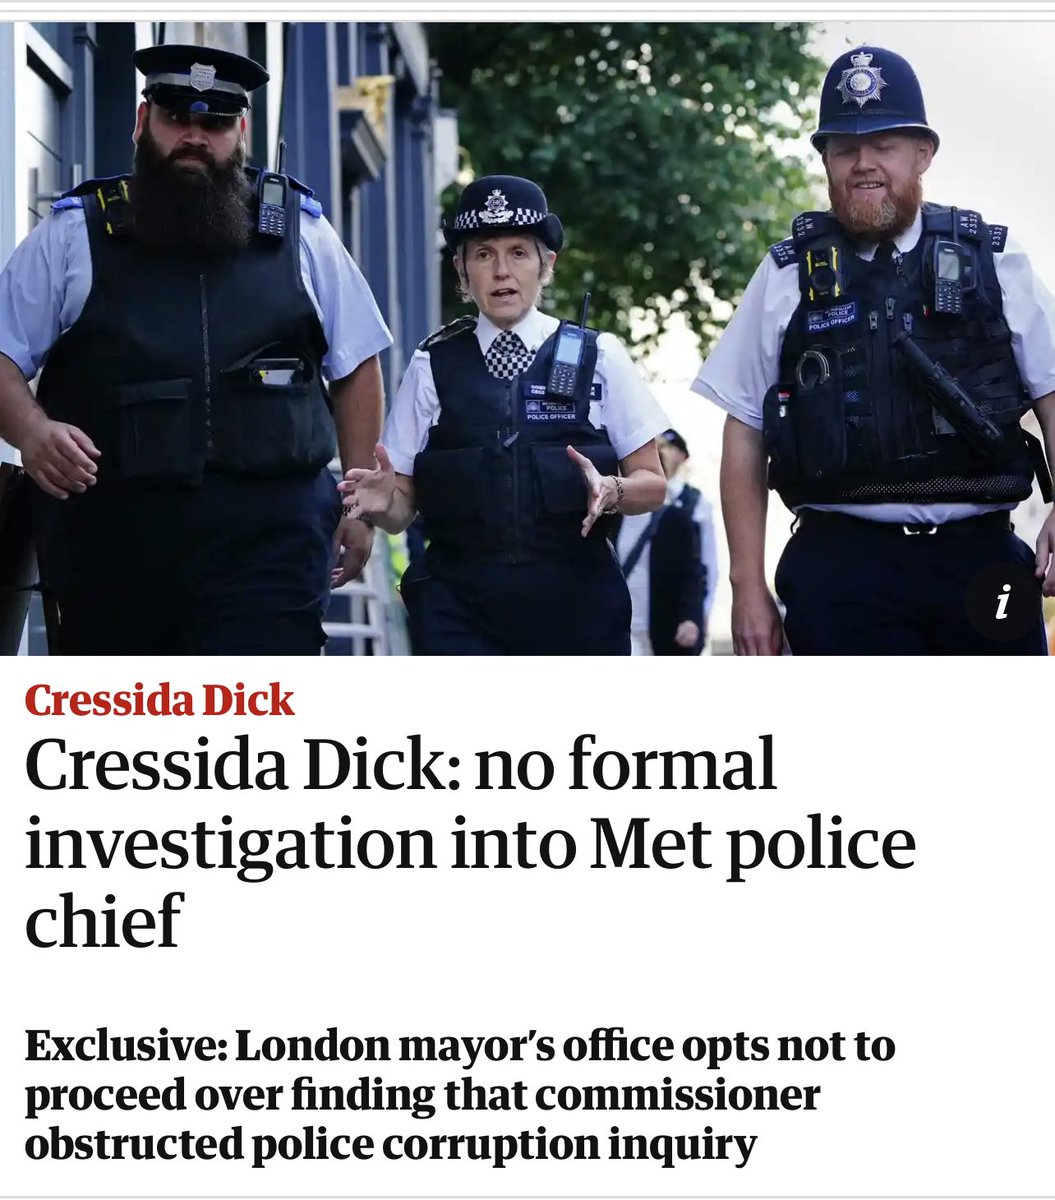 Before his murder, Daniel Morgan was allegedly about to break a story on senior Met police involvement in a major drugs smuggling operation. Cressida Dick blocked the inquiry and Labour Mayor Sadiq Khan has got her back. The state of the UK.